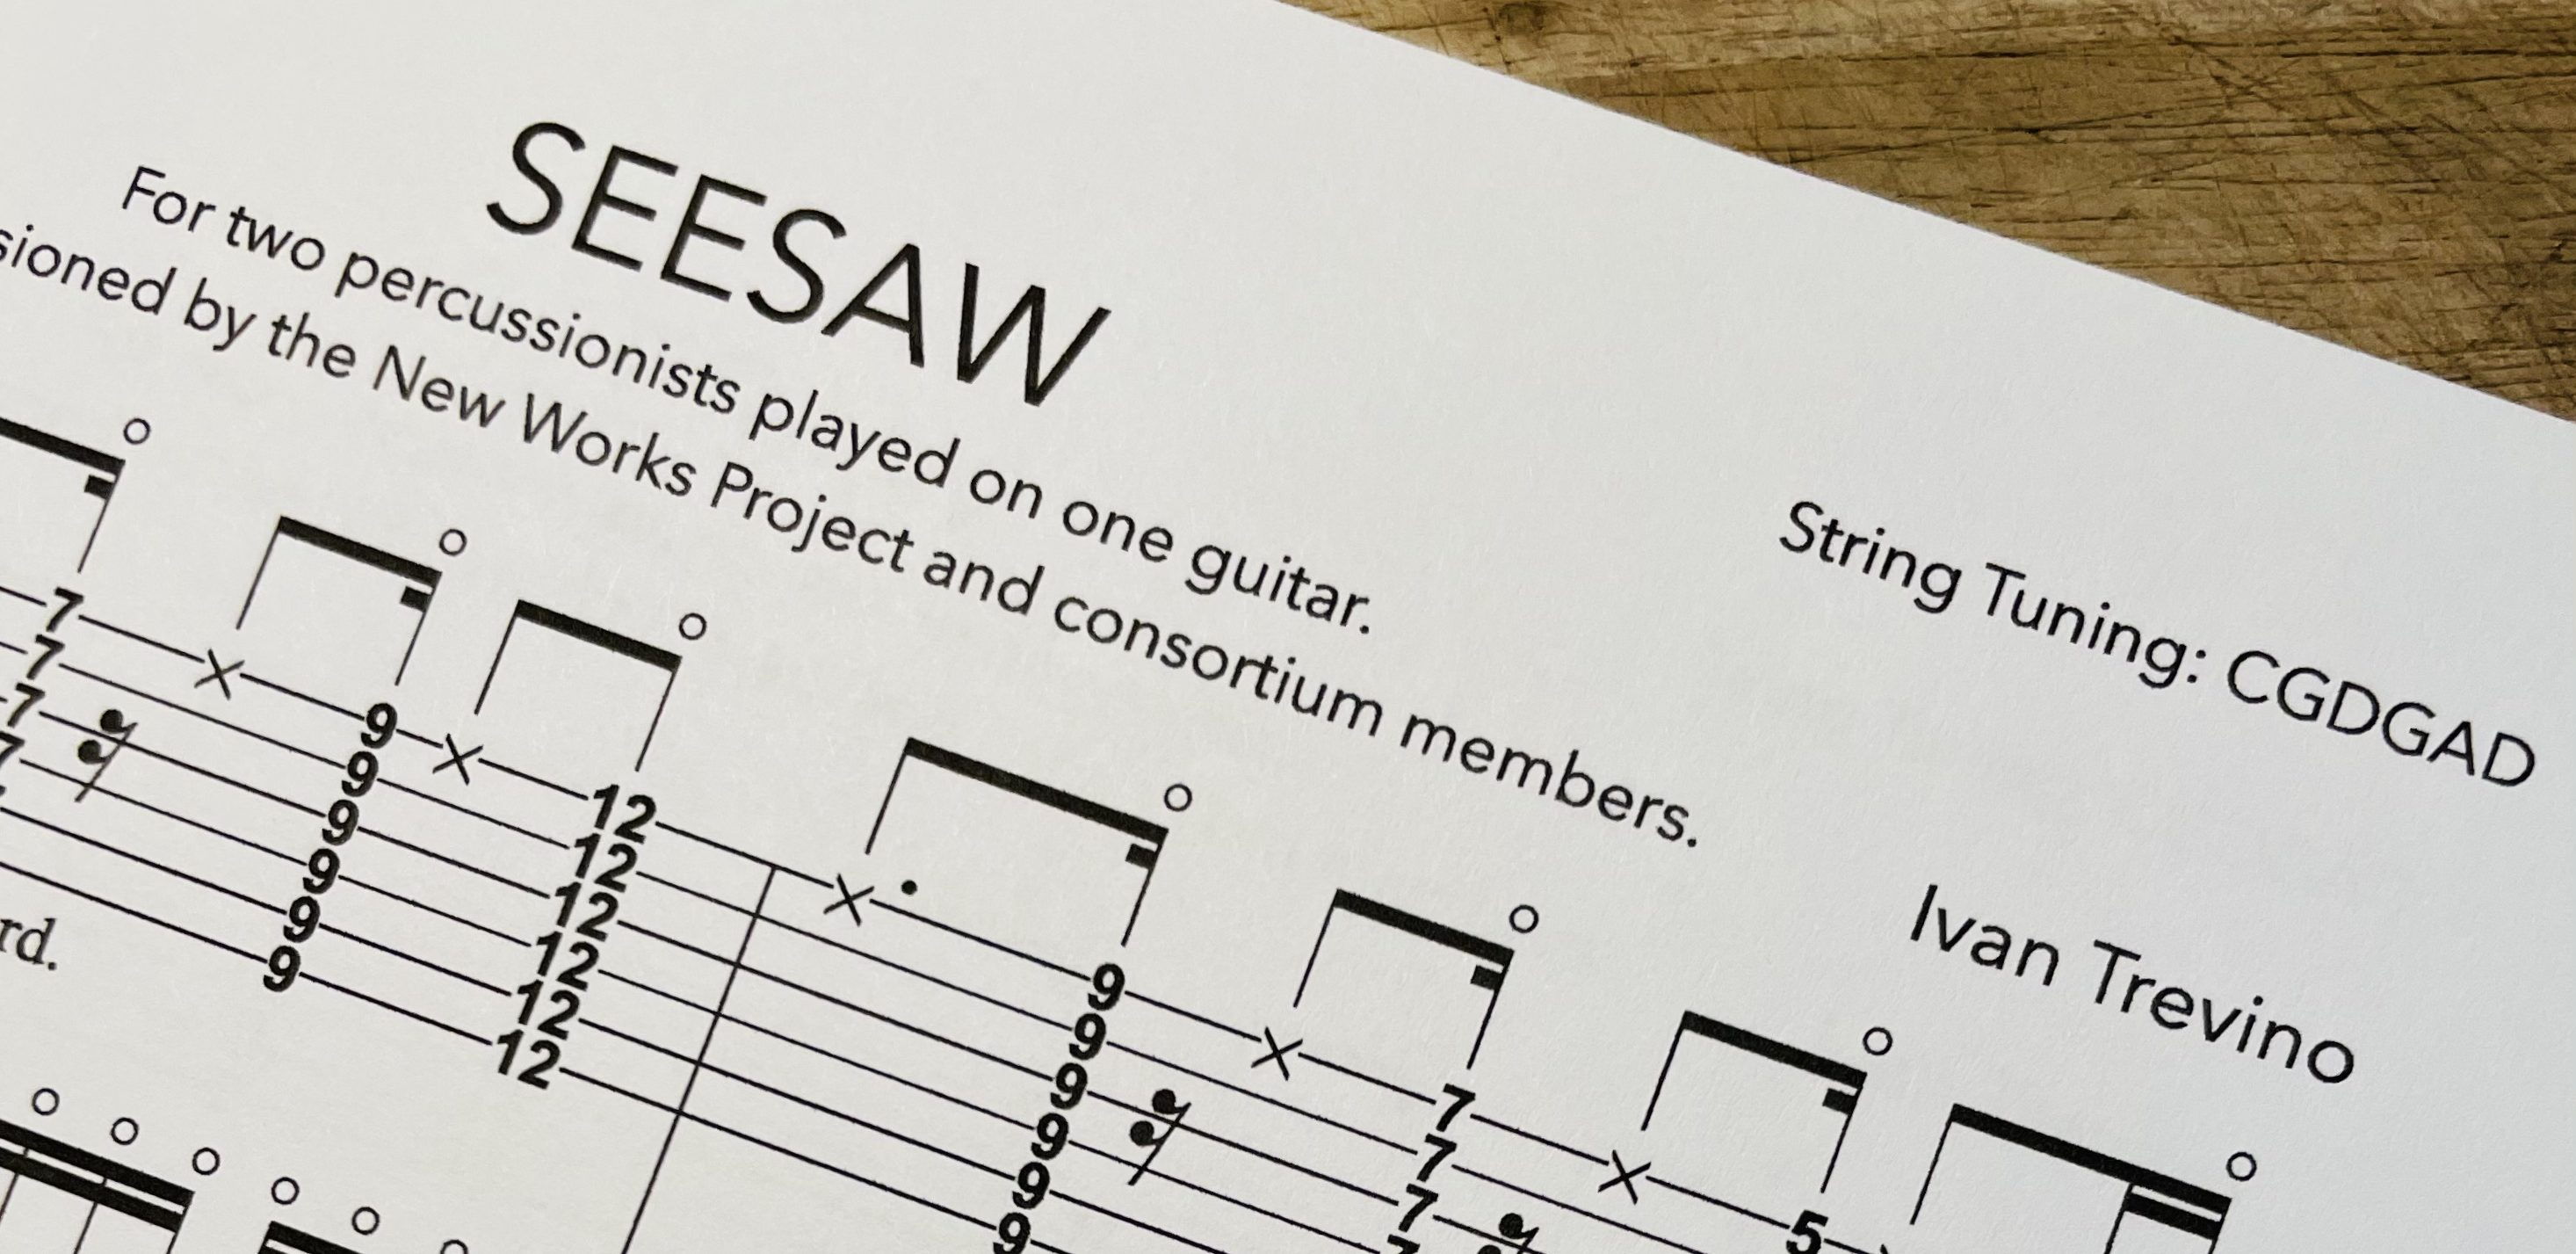 New Release: SEESAW for percussion duo, played on guitar